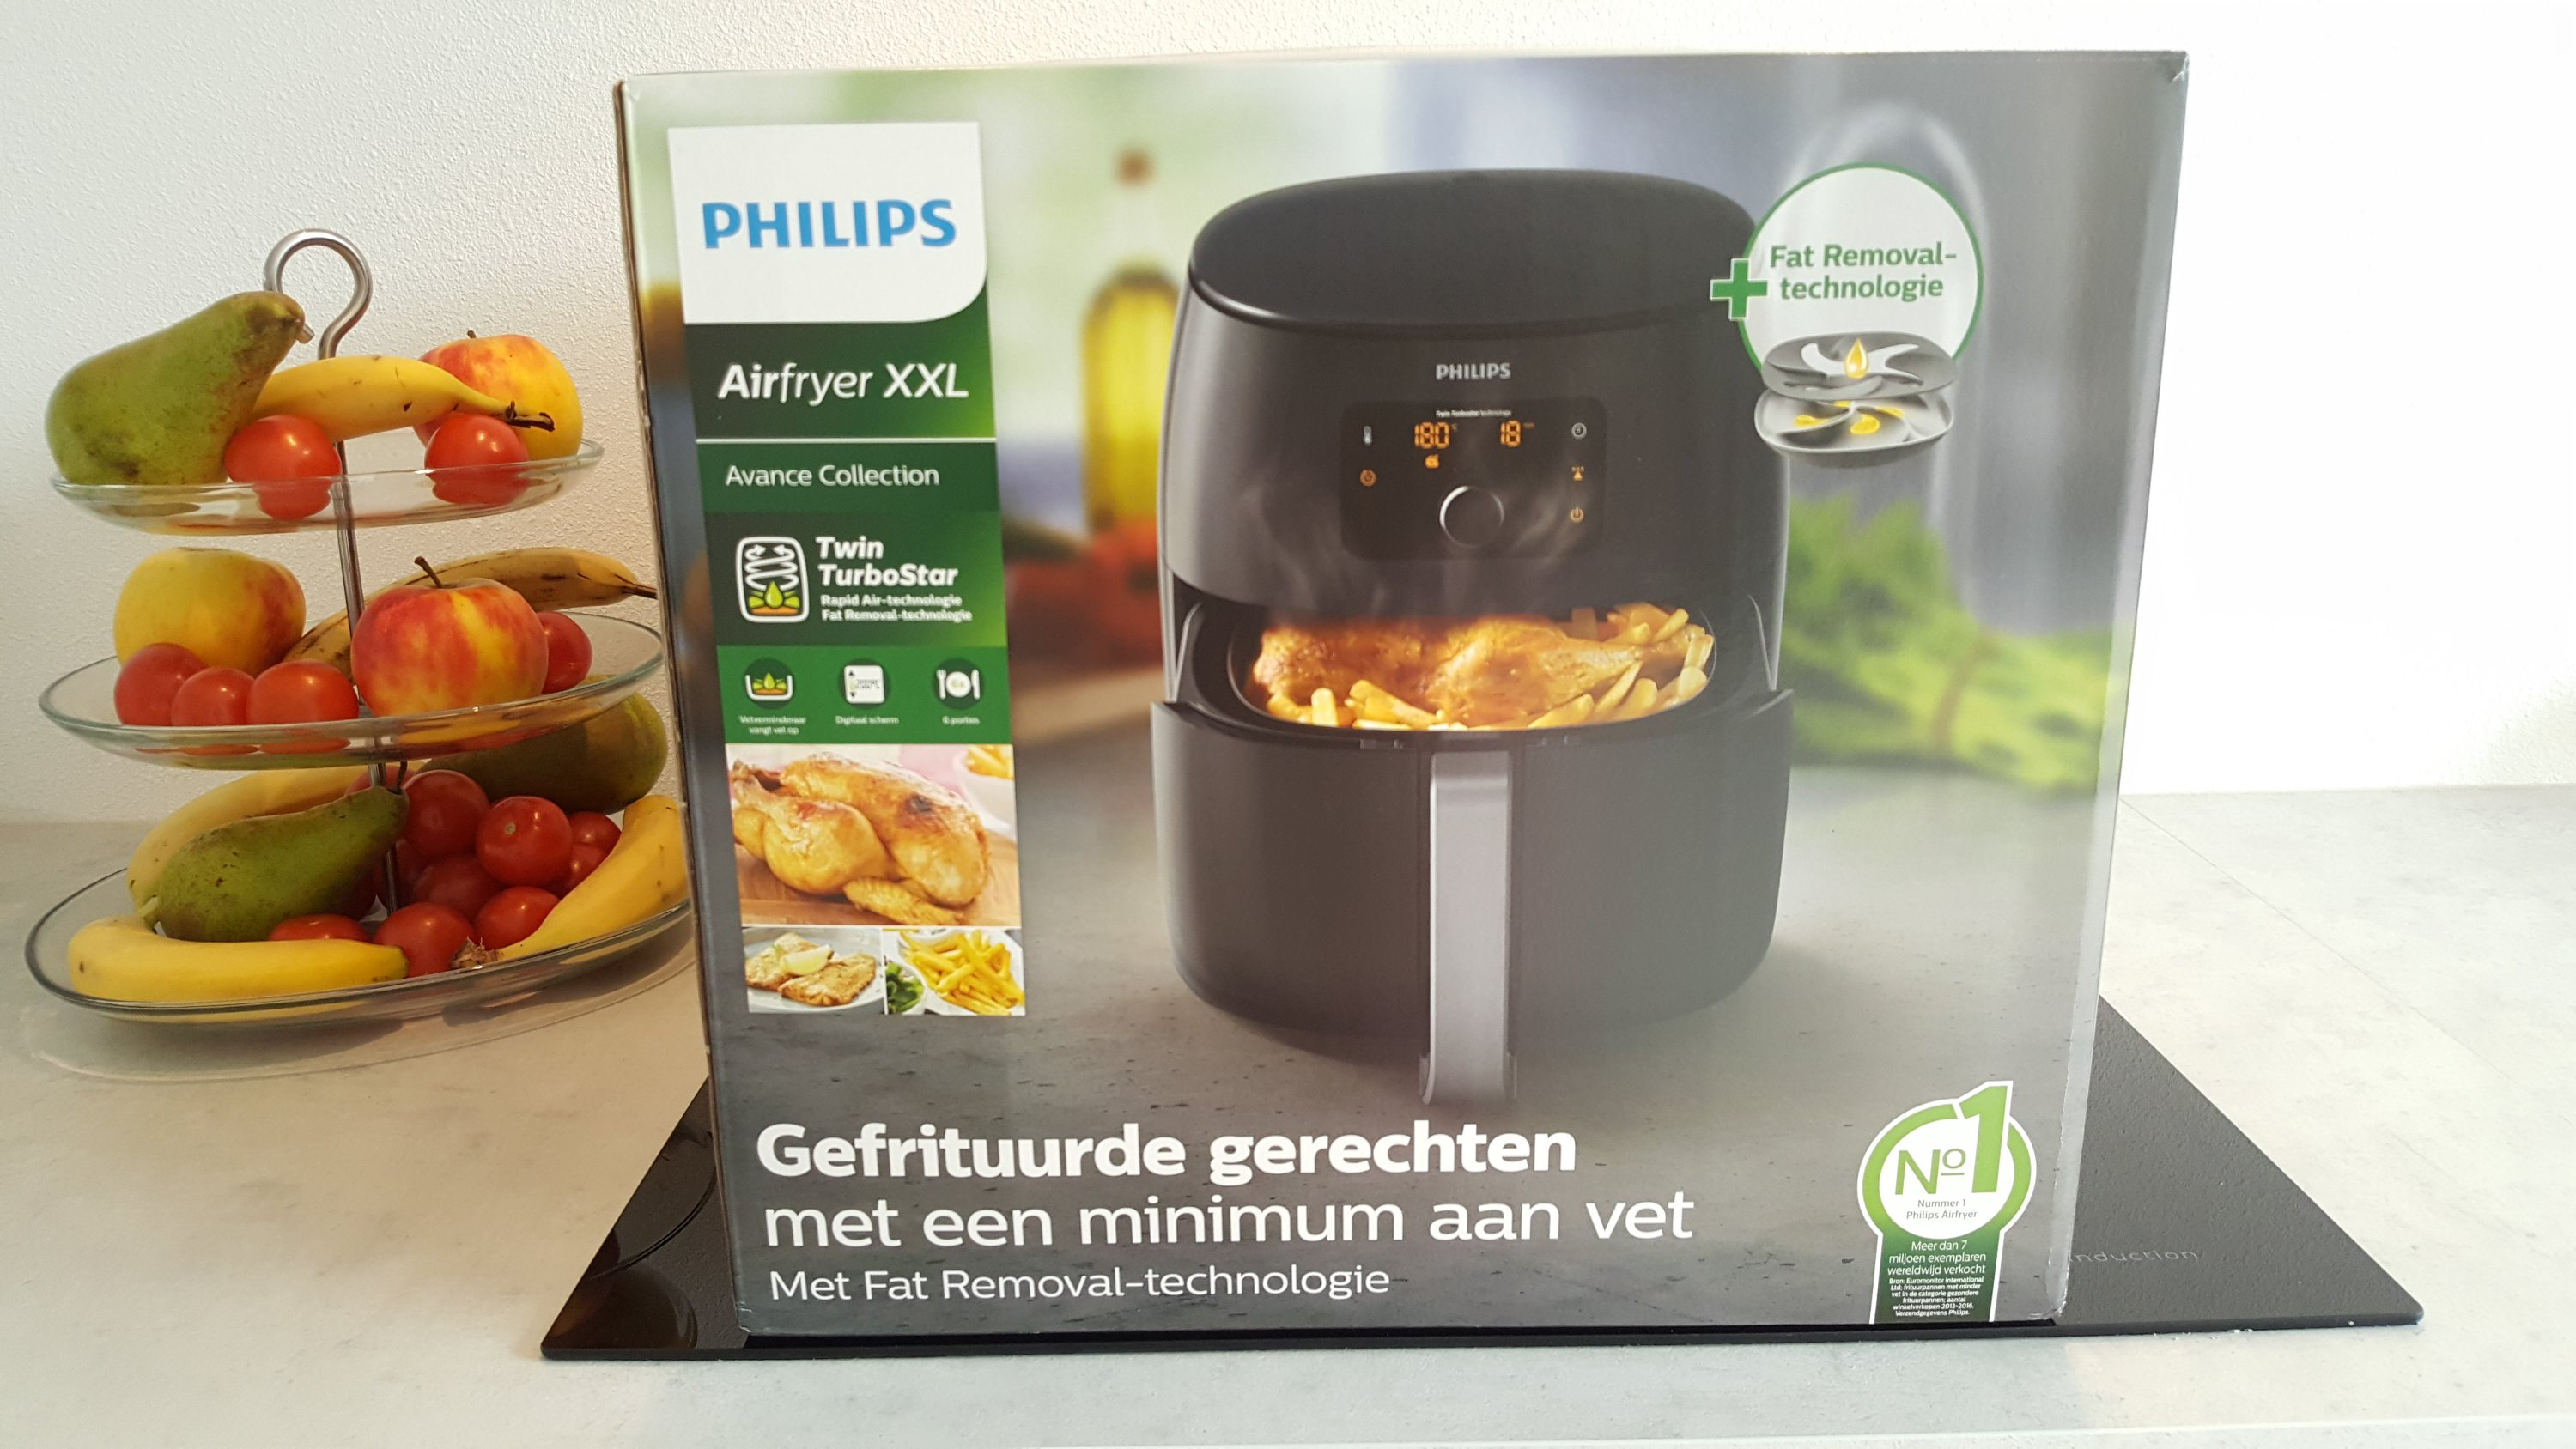 Review: Philips Airfryer XXL